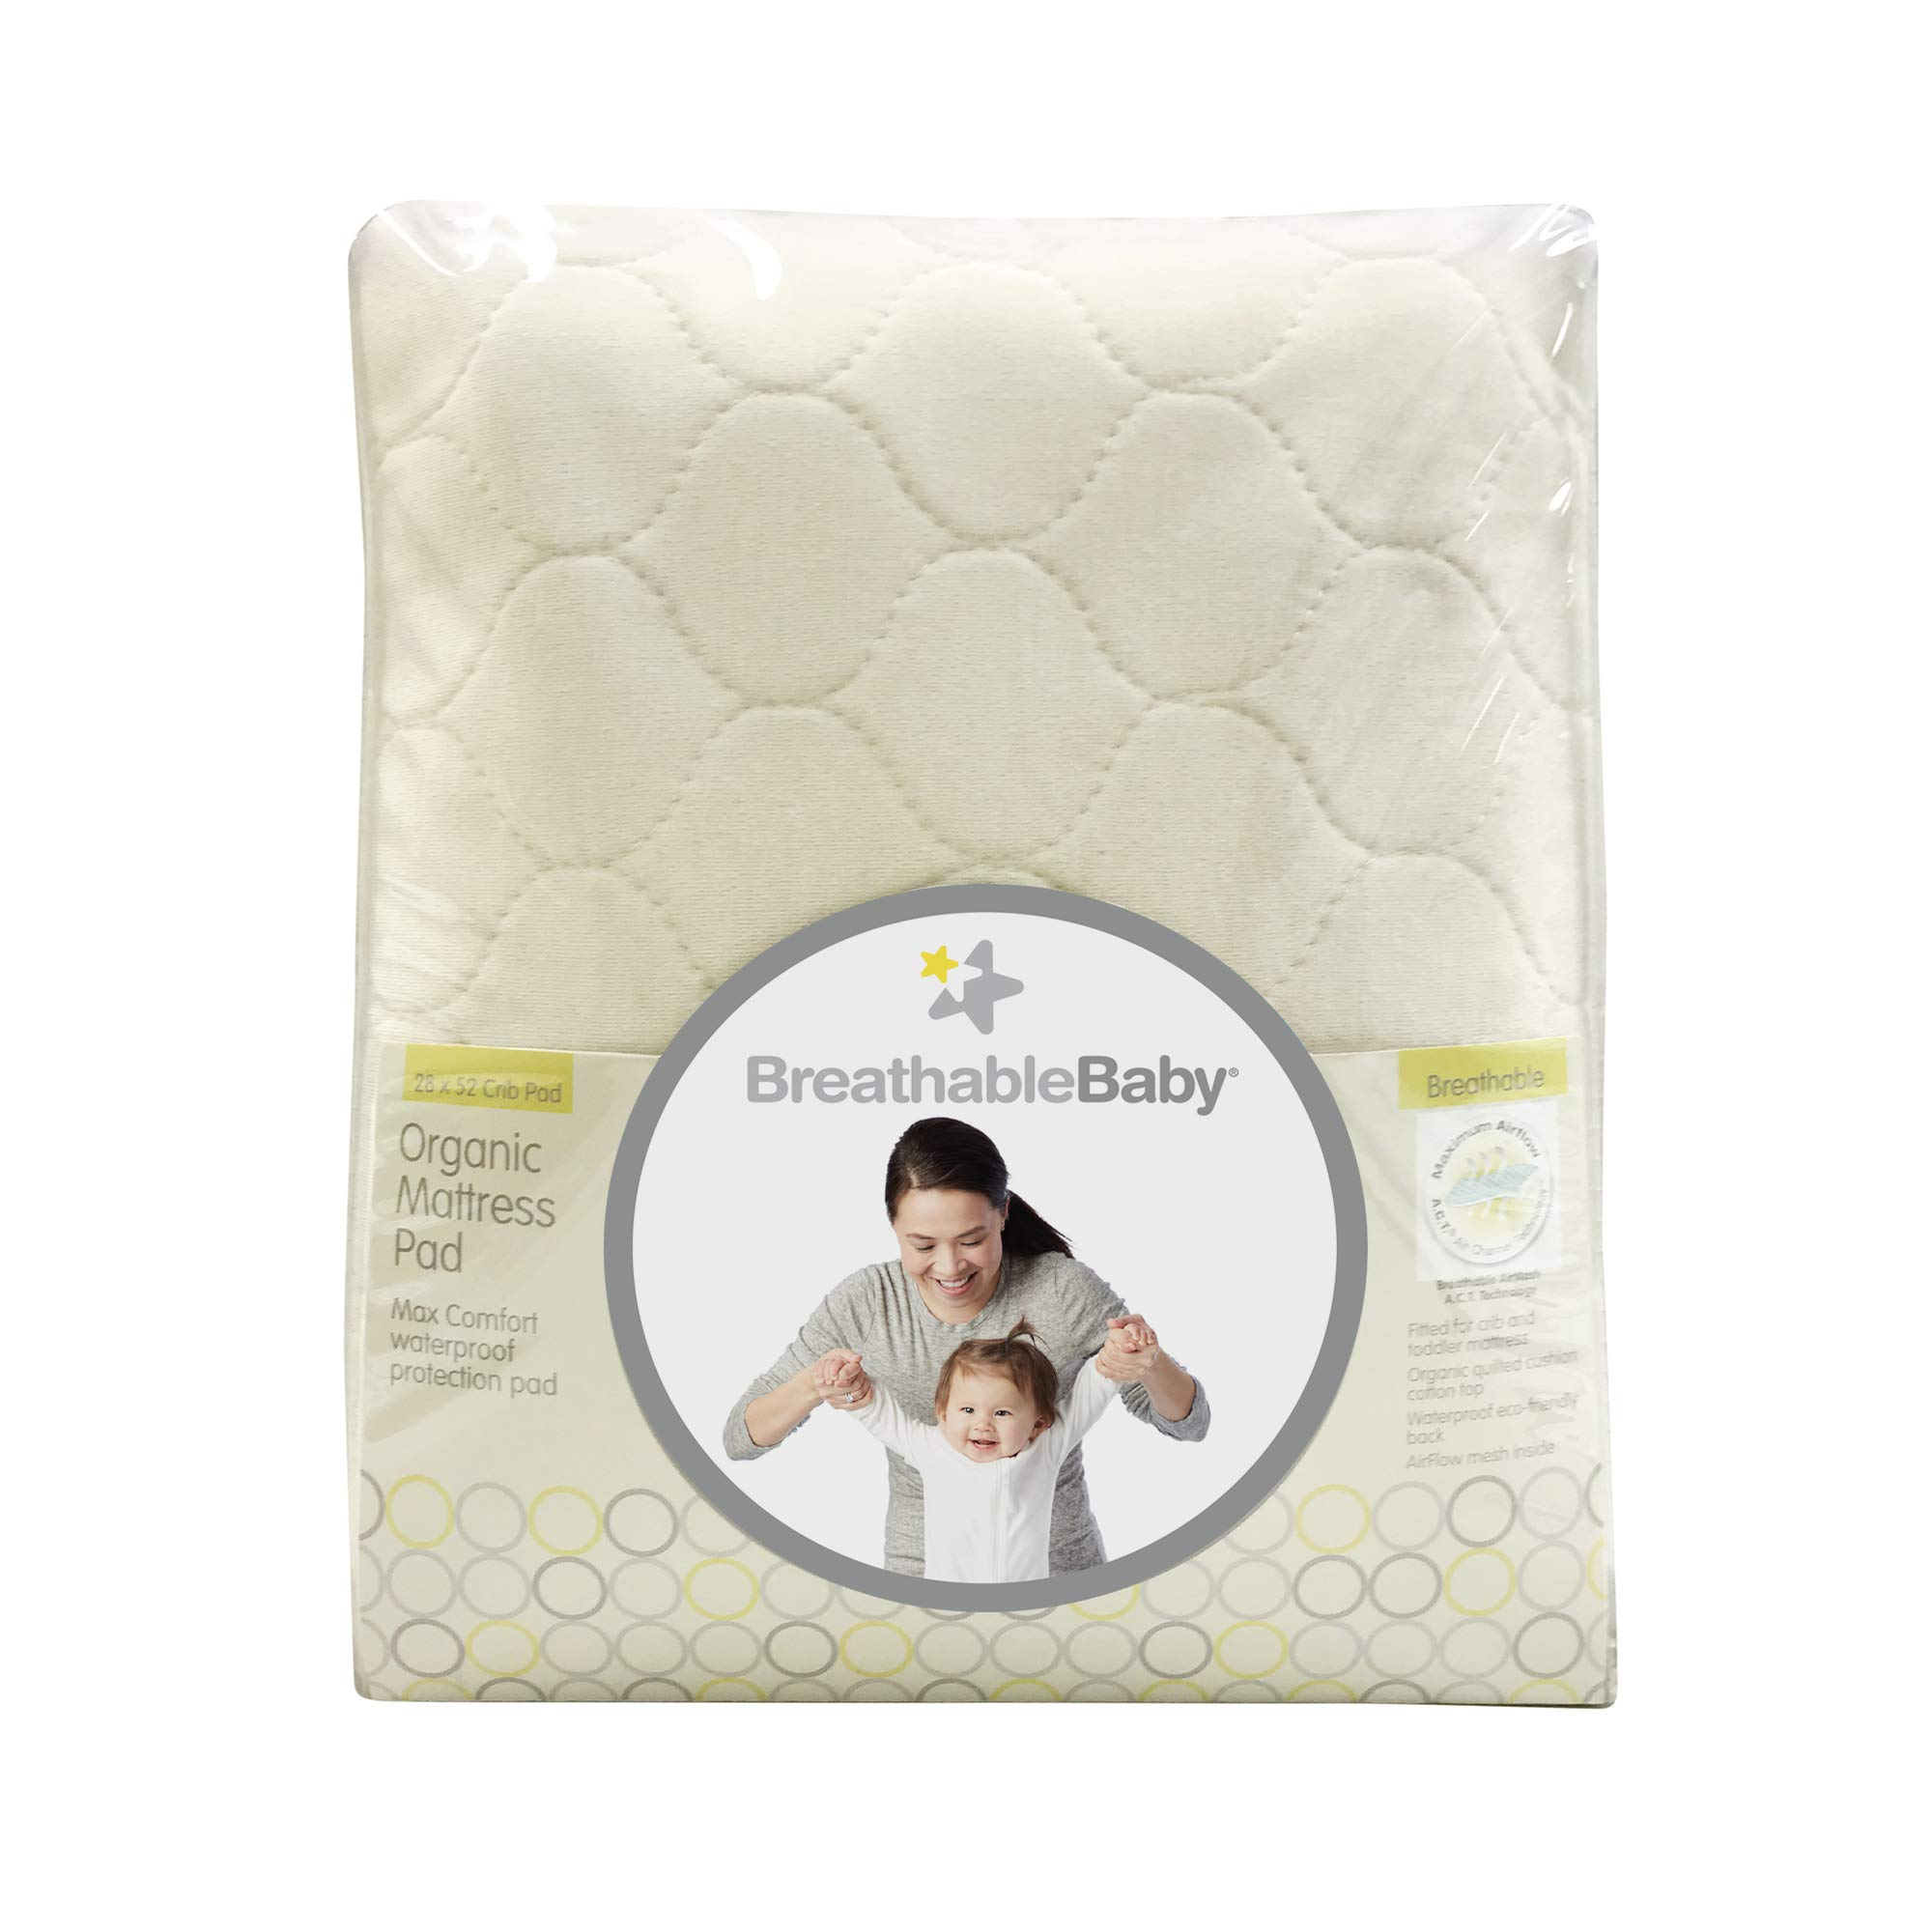 BreathableBaby Premium Organic Fitted, Quilted Mattress Cover and Pad, 100% Waterproof, 28'' x 52'' by BreathableBaby